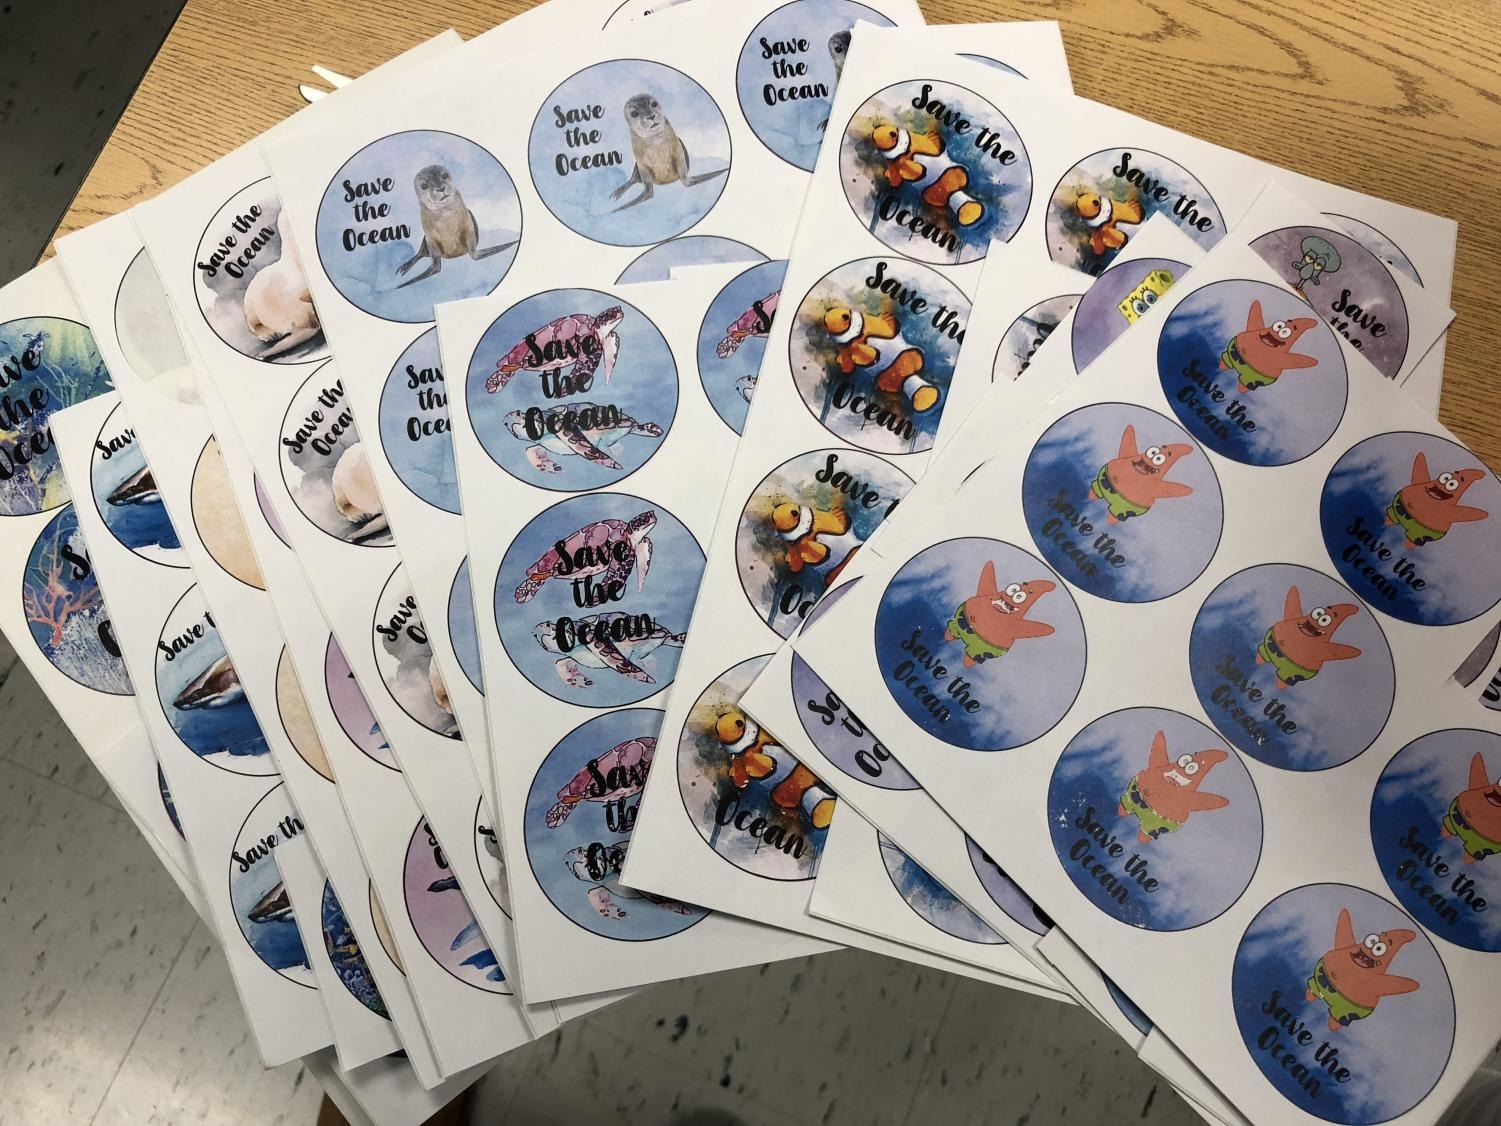 Examples of stickers that will be available for purchase to help support senior Lucy Bodde's project.